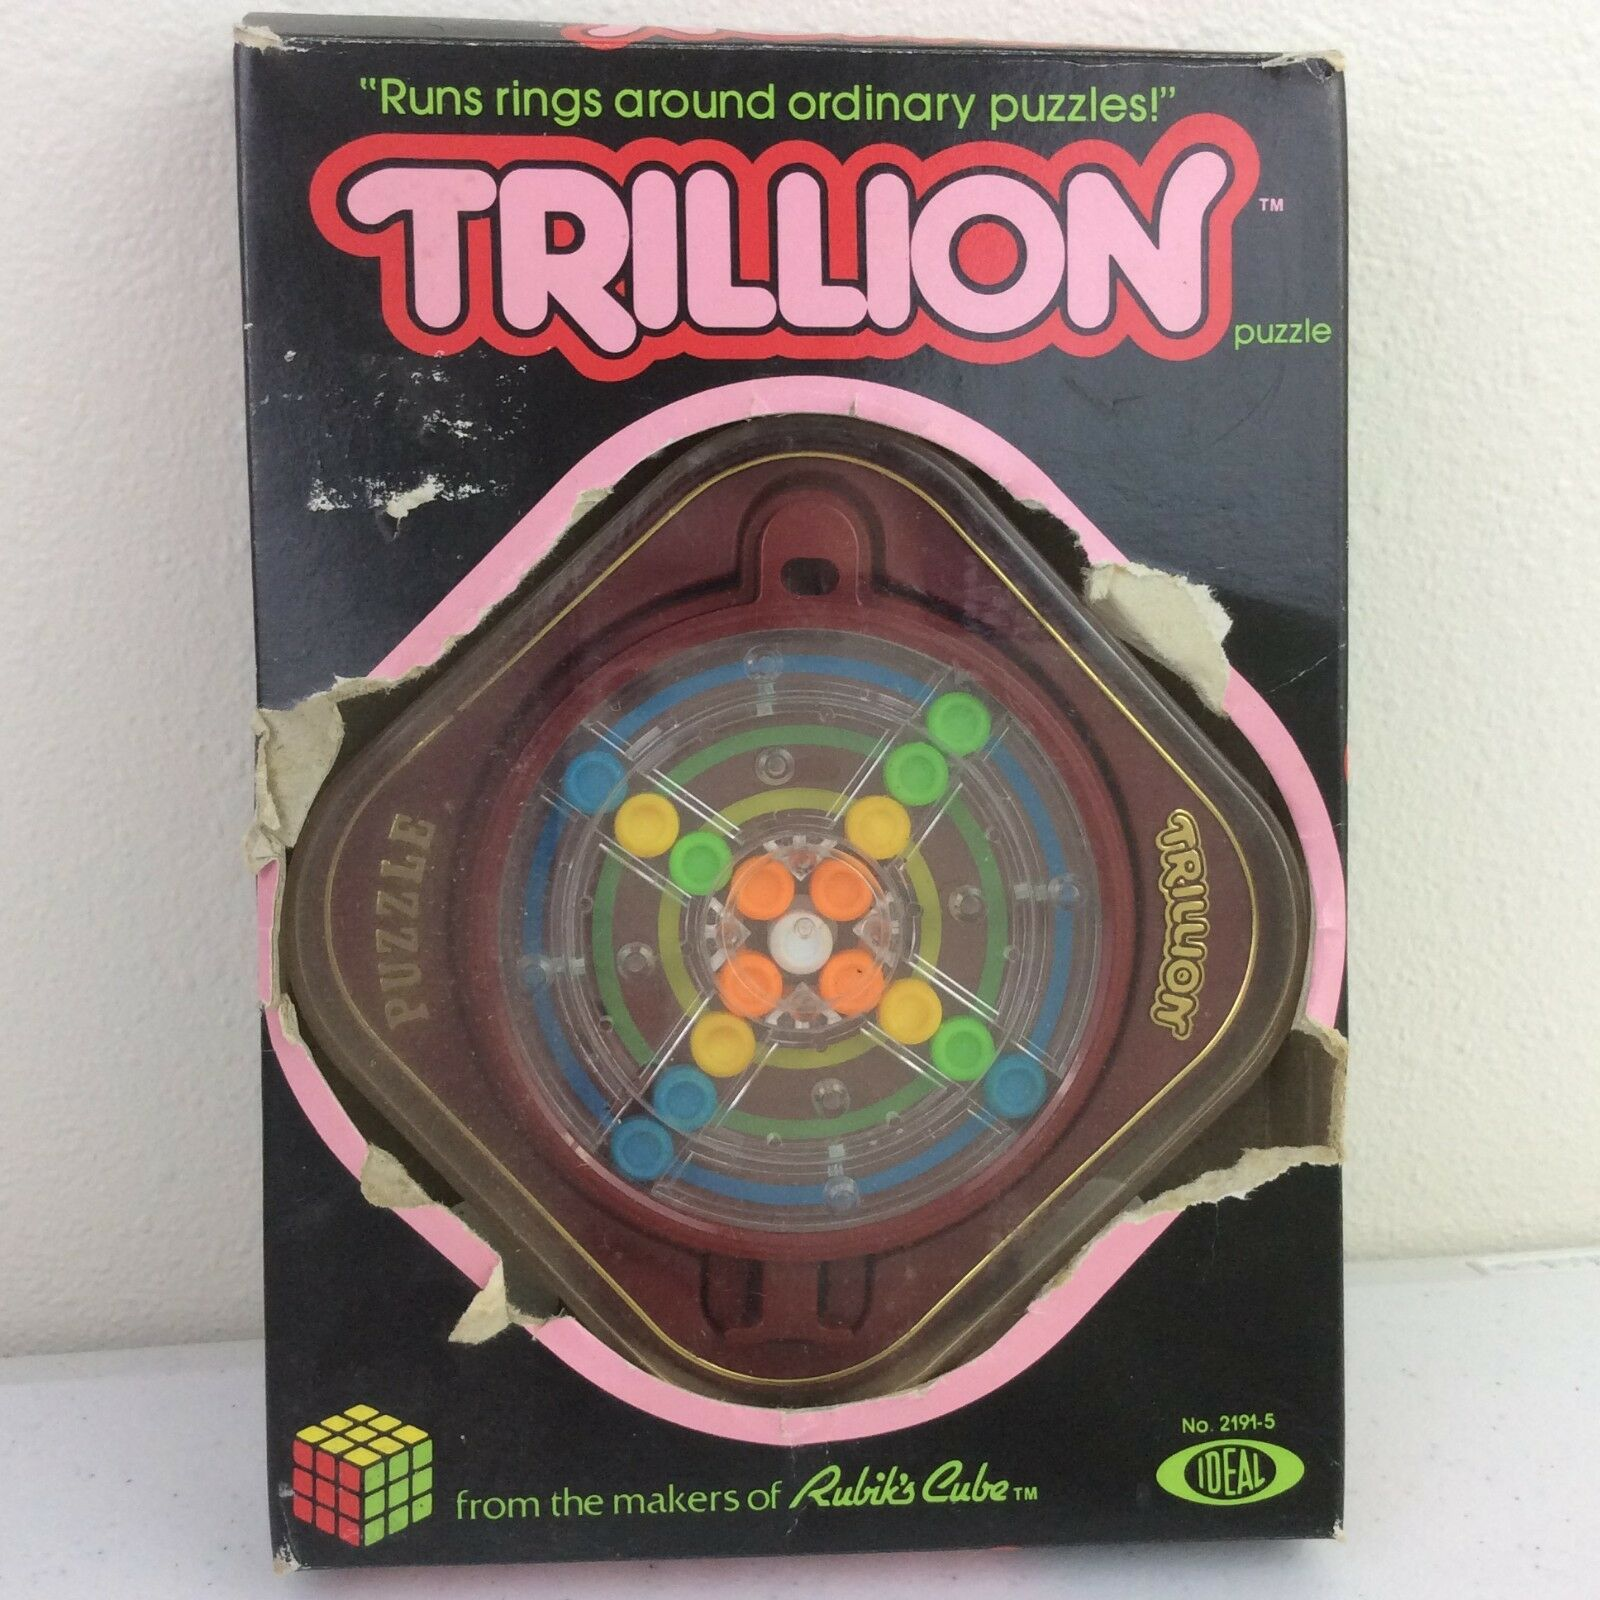 1982 Ideal Toys Trillion Puzzle Game w/ Box Instructions & Instructions Box a26b7d